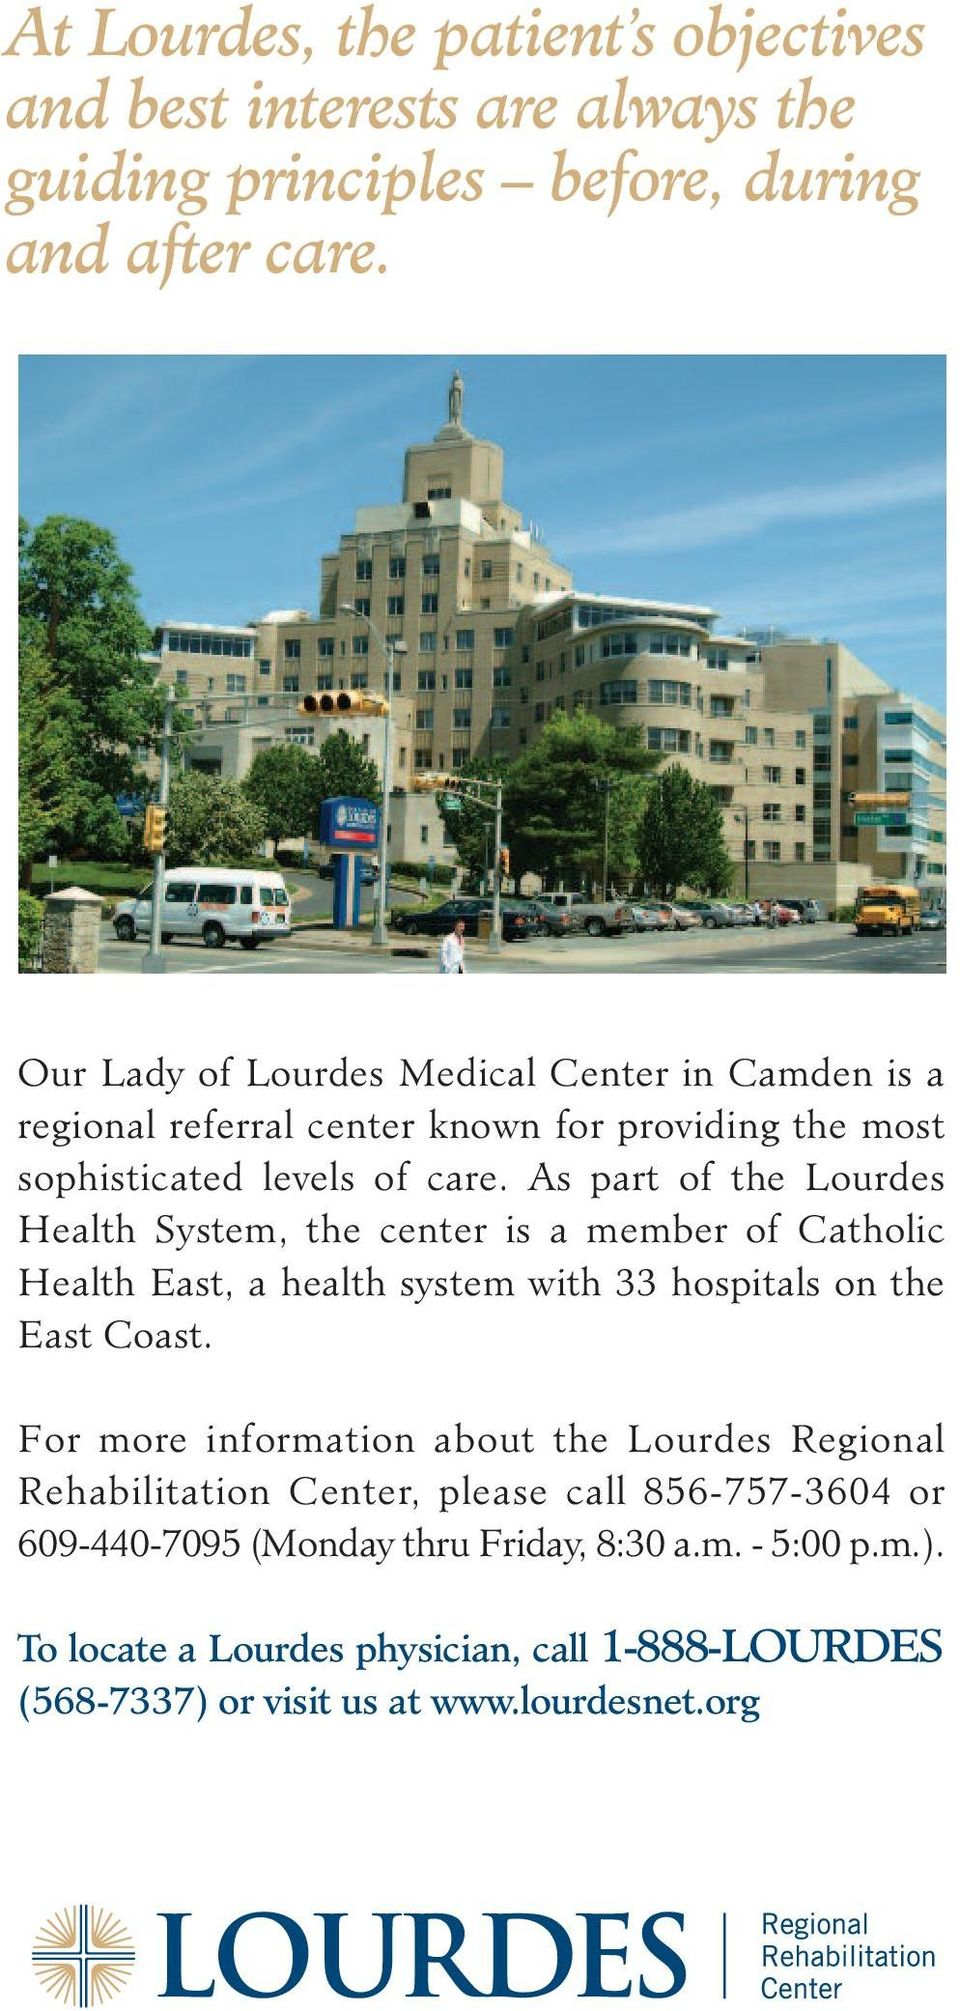 As part of the Lourdes Health System, the center is a member of Catholic Health East, a health system with 33 hospitals on the East Coast.